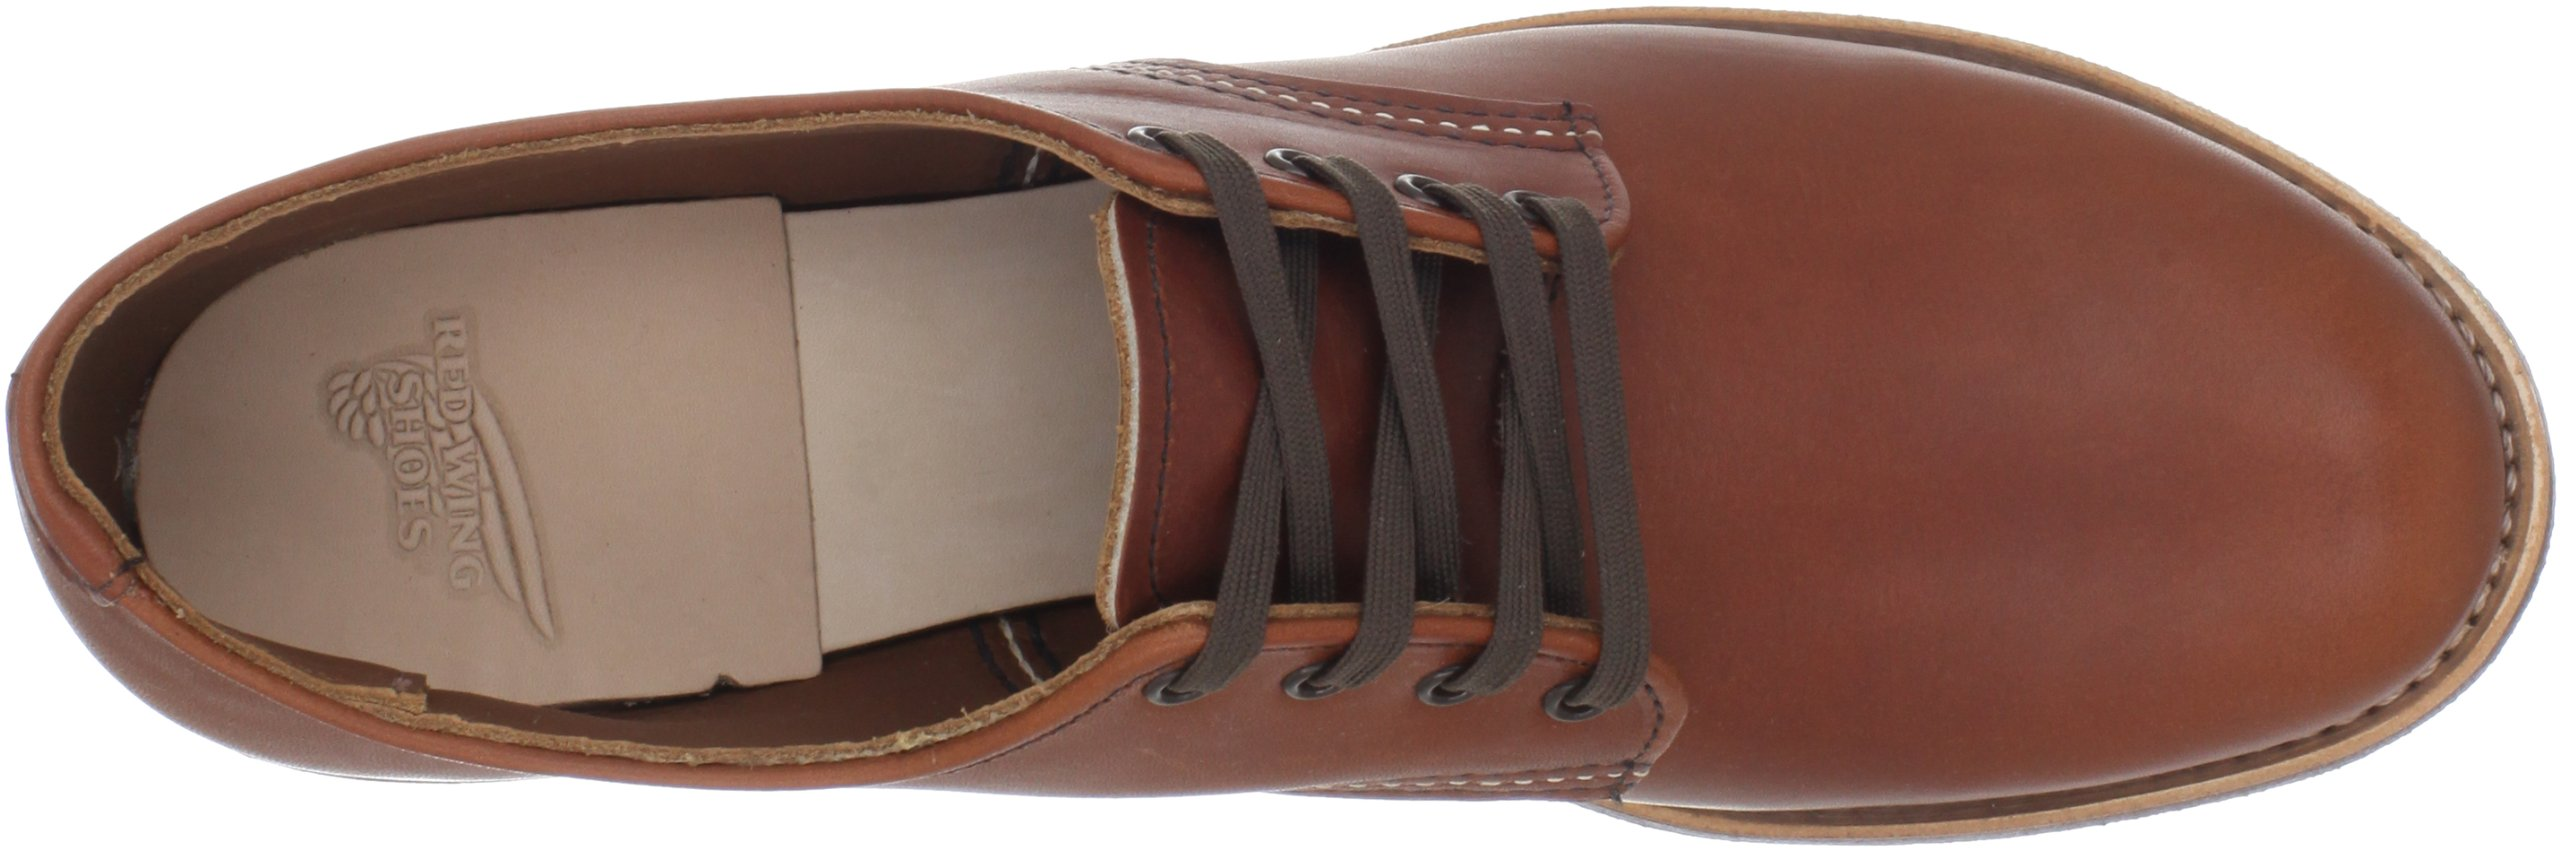 Red Wing Heritage Men's Work Oxford Shoe,Brick,10 D(M) US by Red Wing (Image #7)